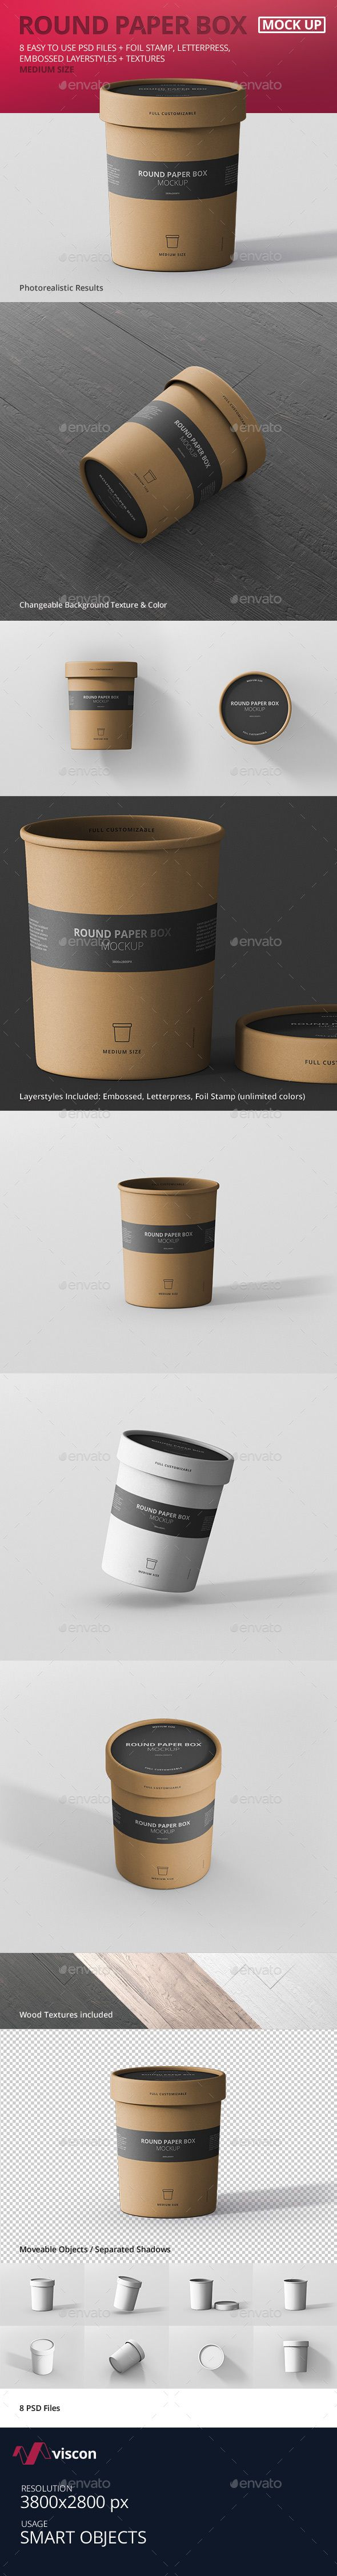 Paper Box Mockup Round - Medium Size - Food and Drink Packaging